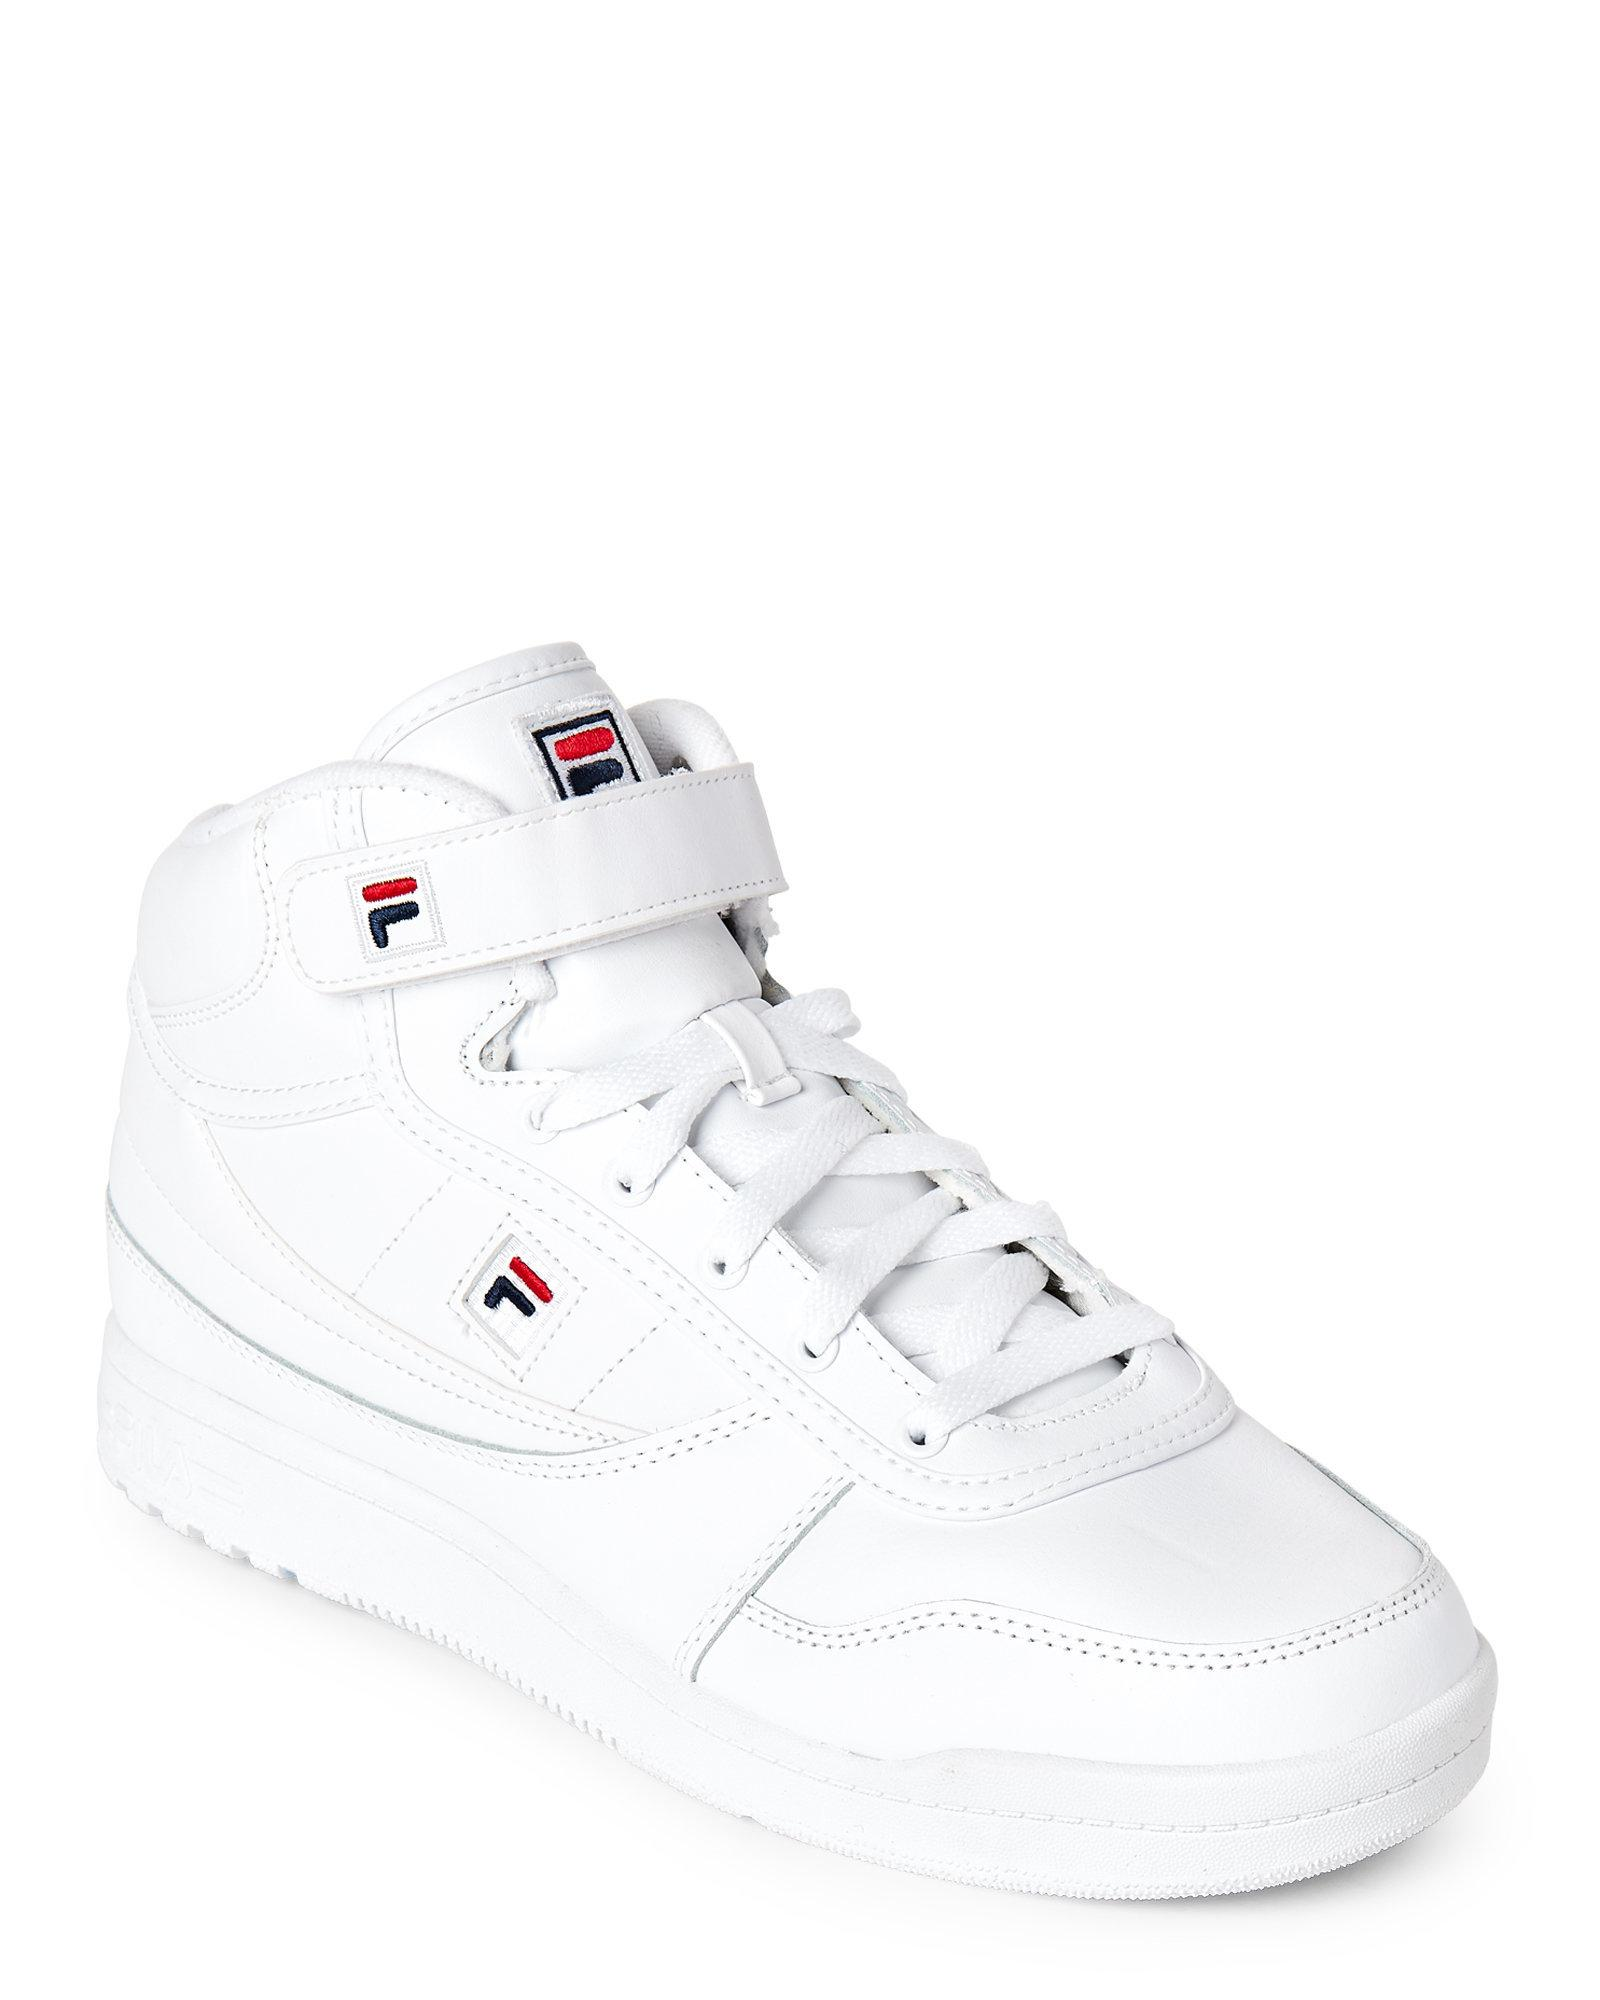 fila high tops buy clothes shoes online